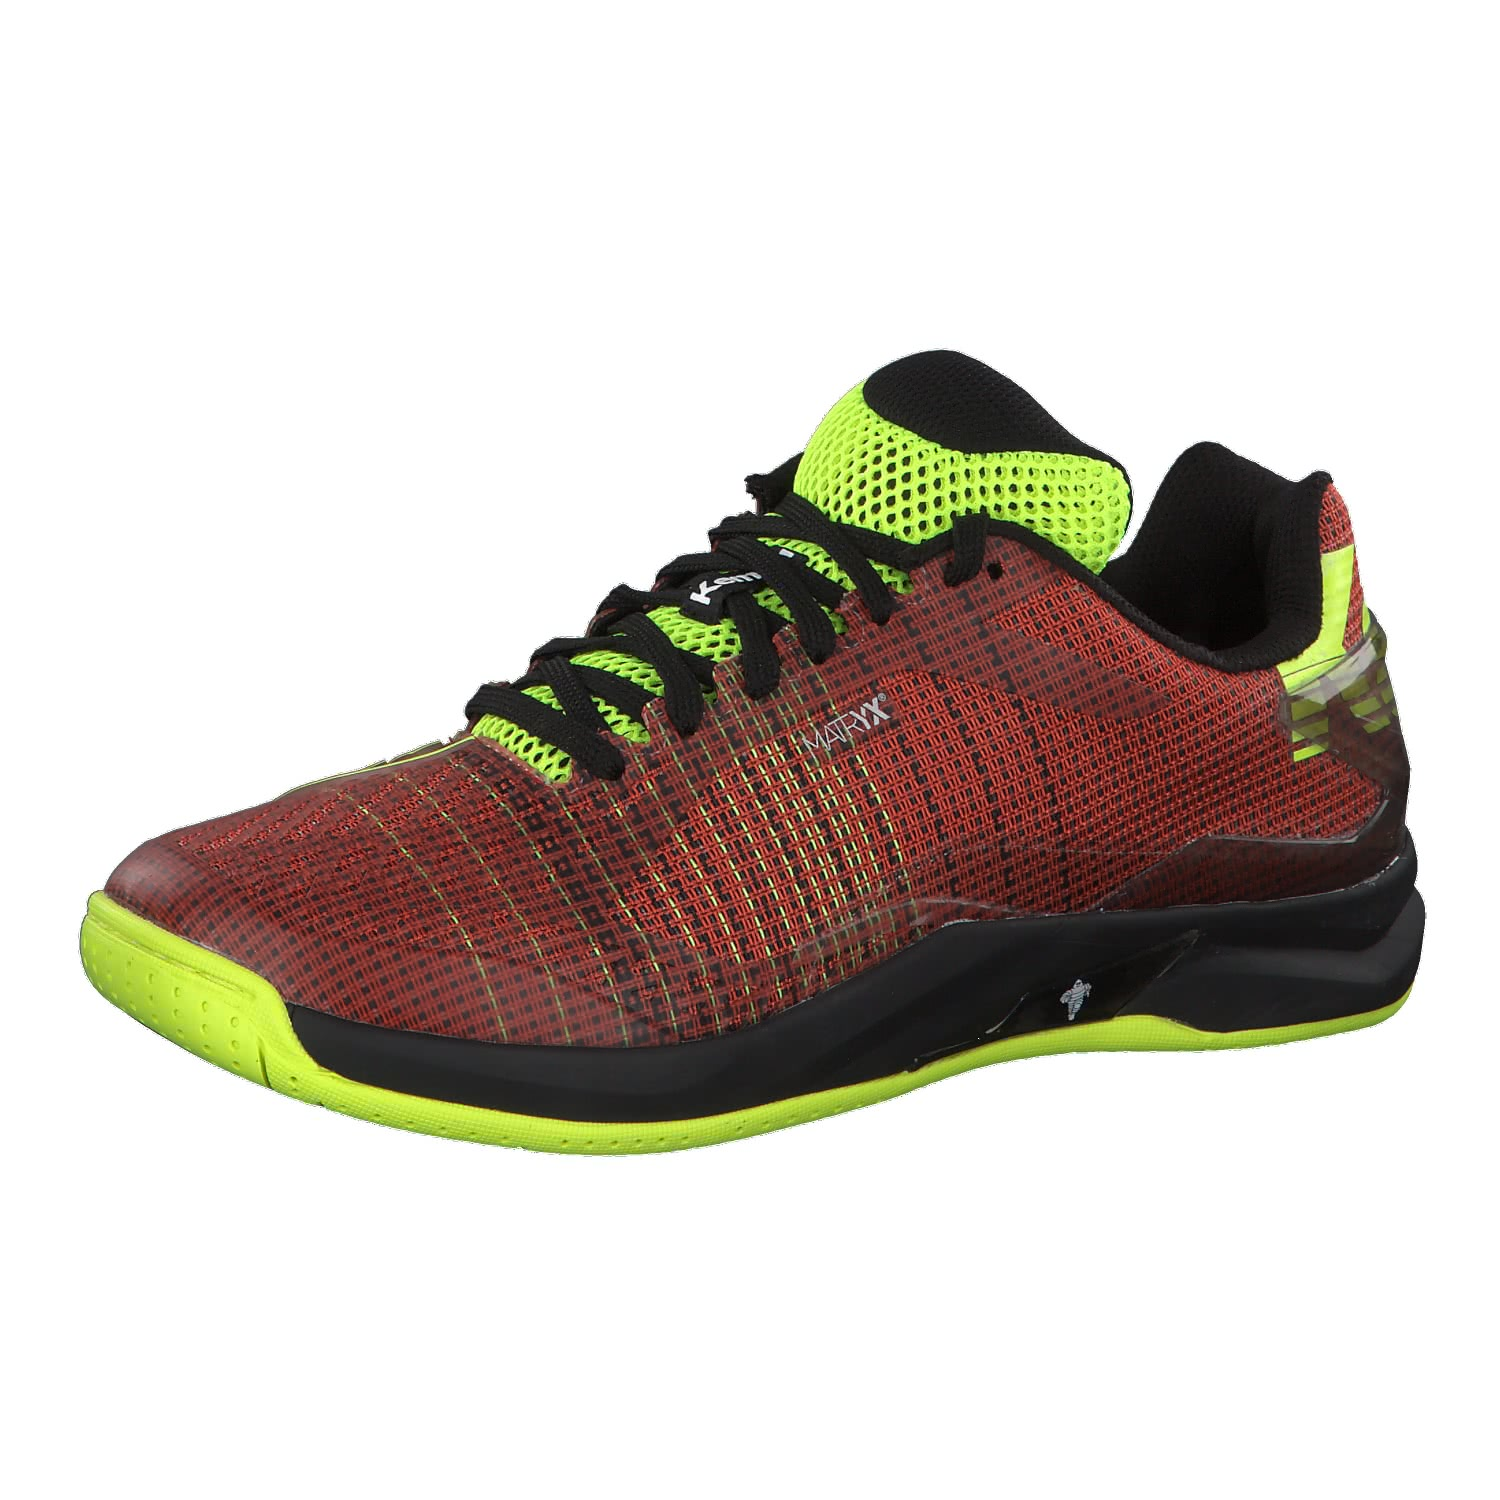 ATTACK TWO CONTENDER - Handballschuh - tomato red/black/fluo yellow f4v3I9t